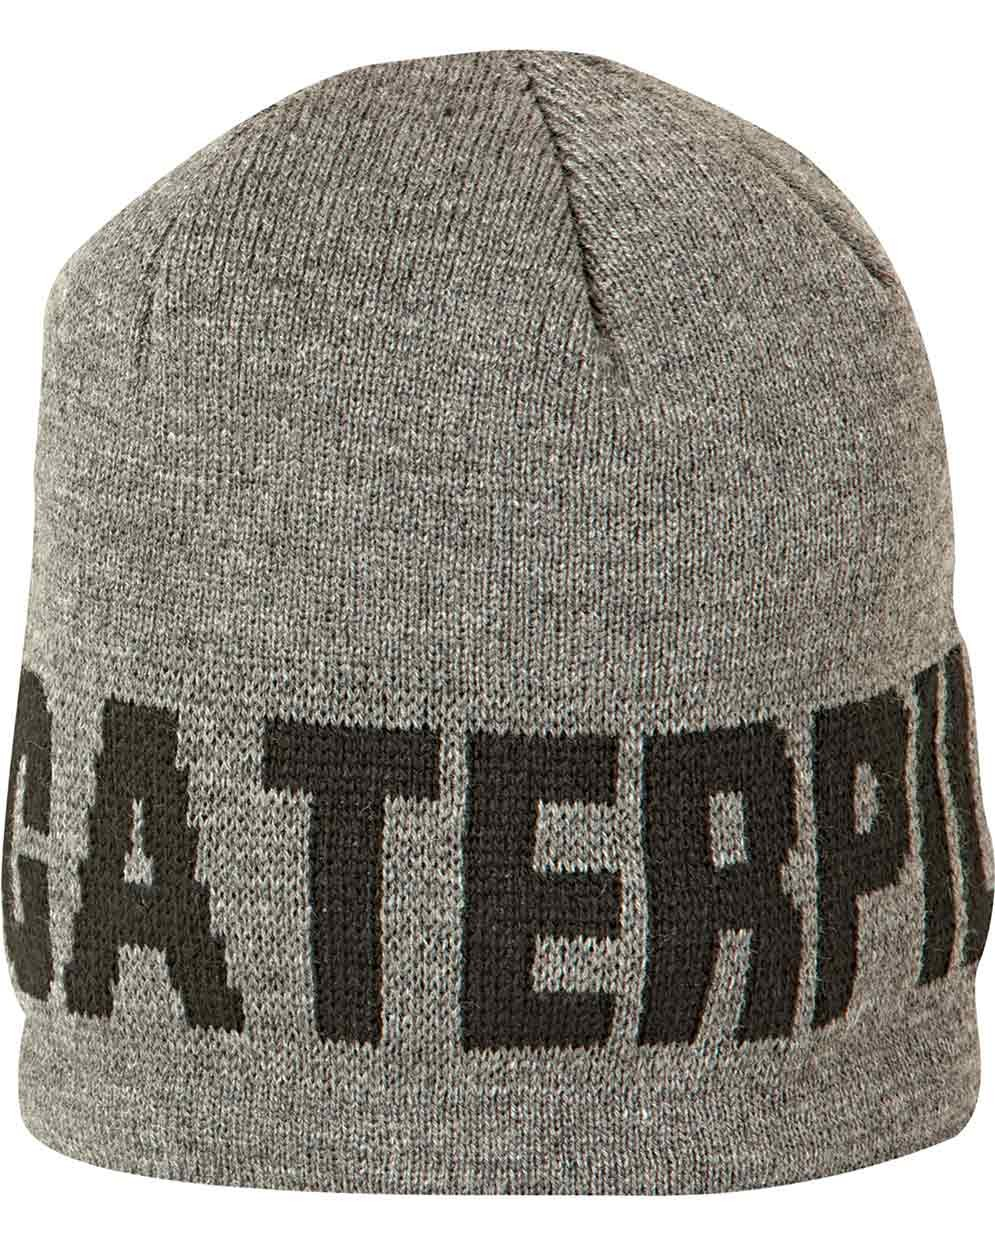 907e159d29054 CAT 1128043 Branded Cap - Knitted Hats Fleece Hats and Beanies ...